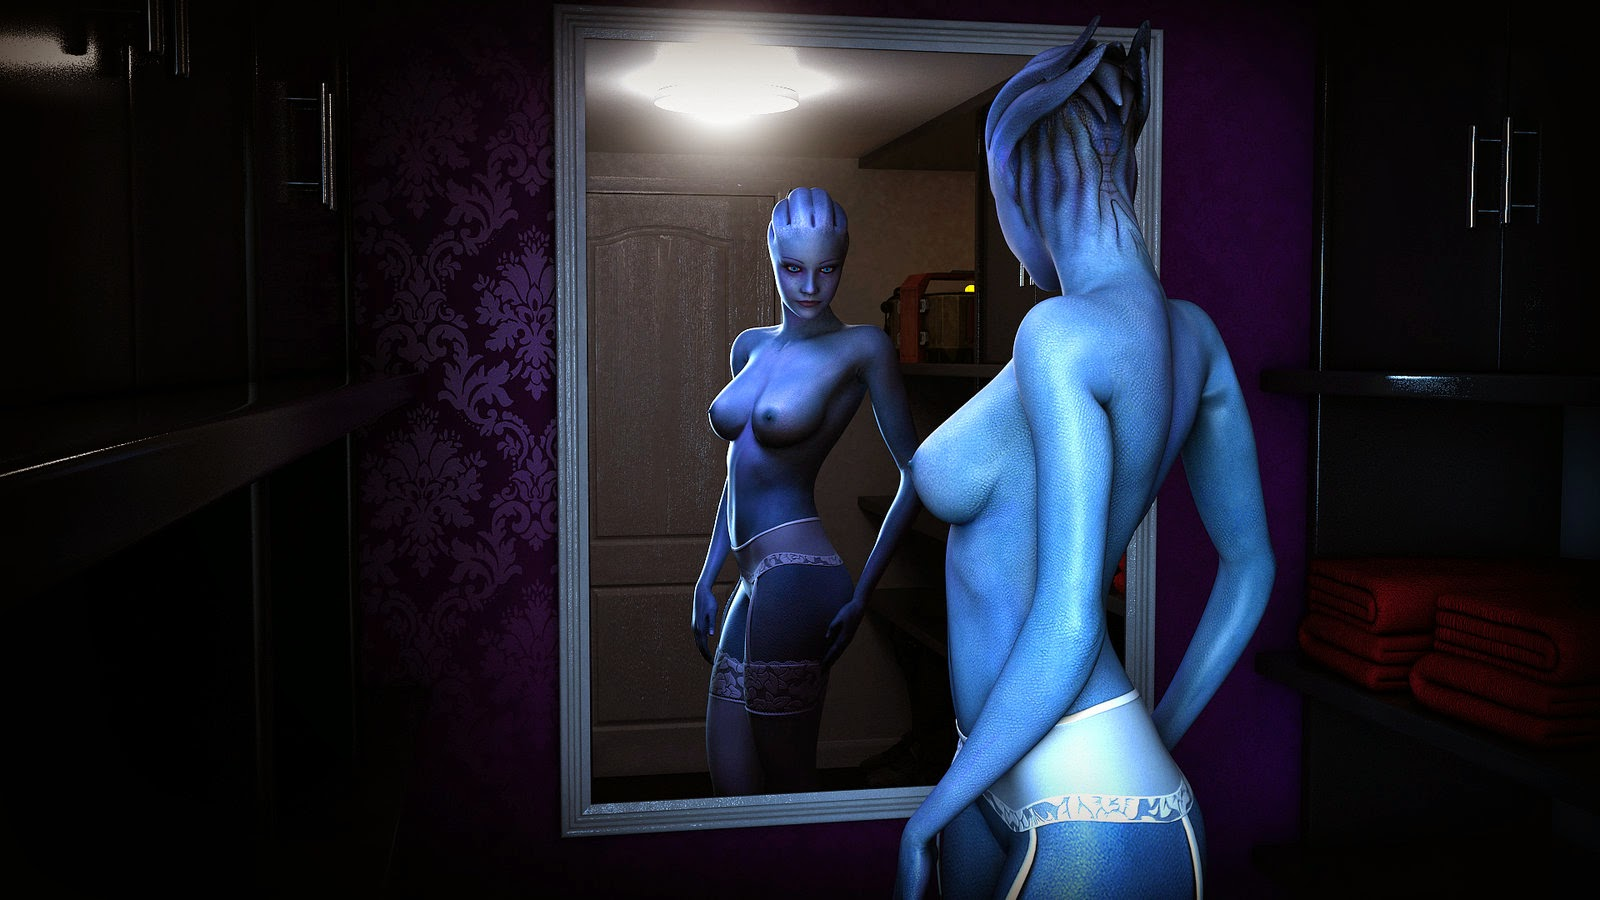 Mass effect liara sex photo sex photos